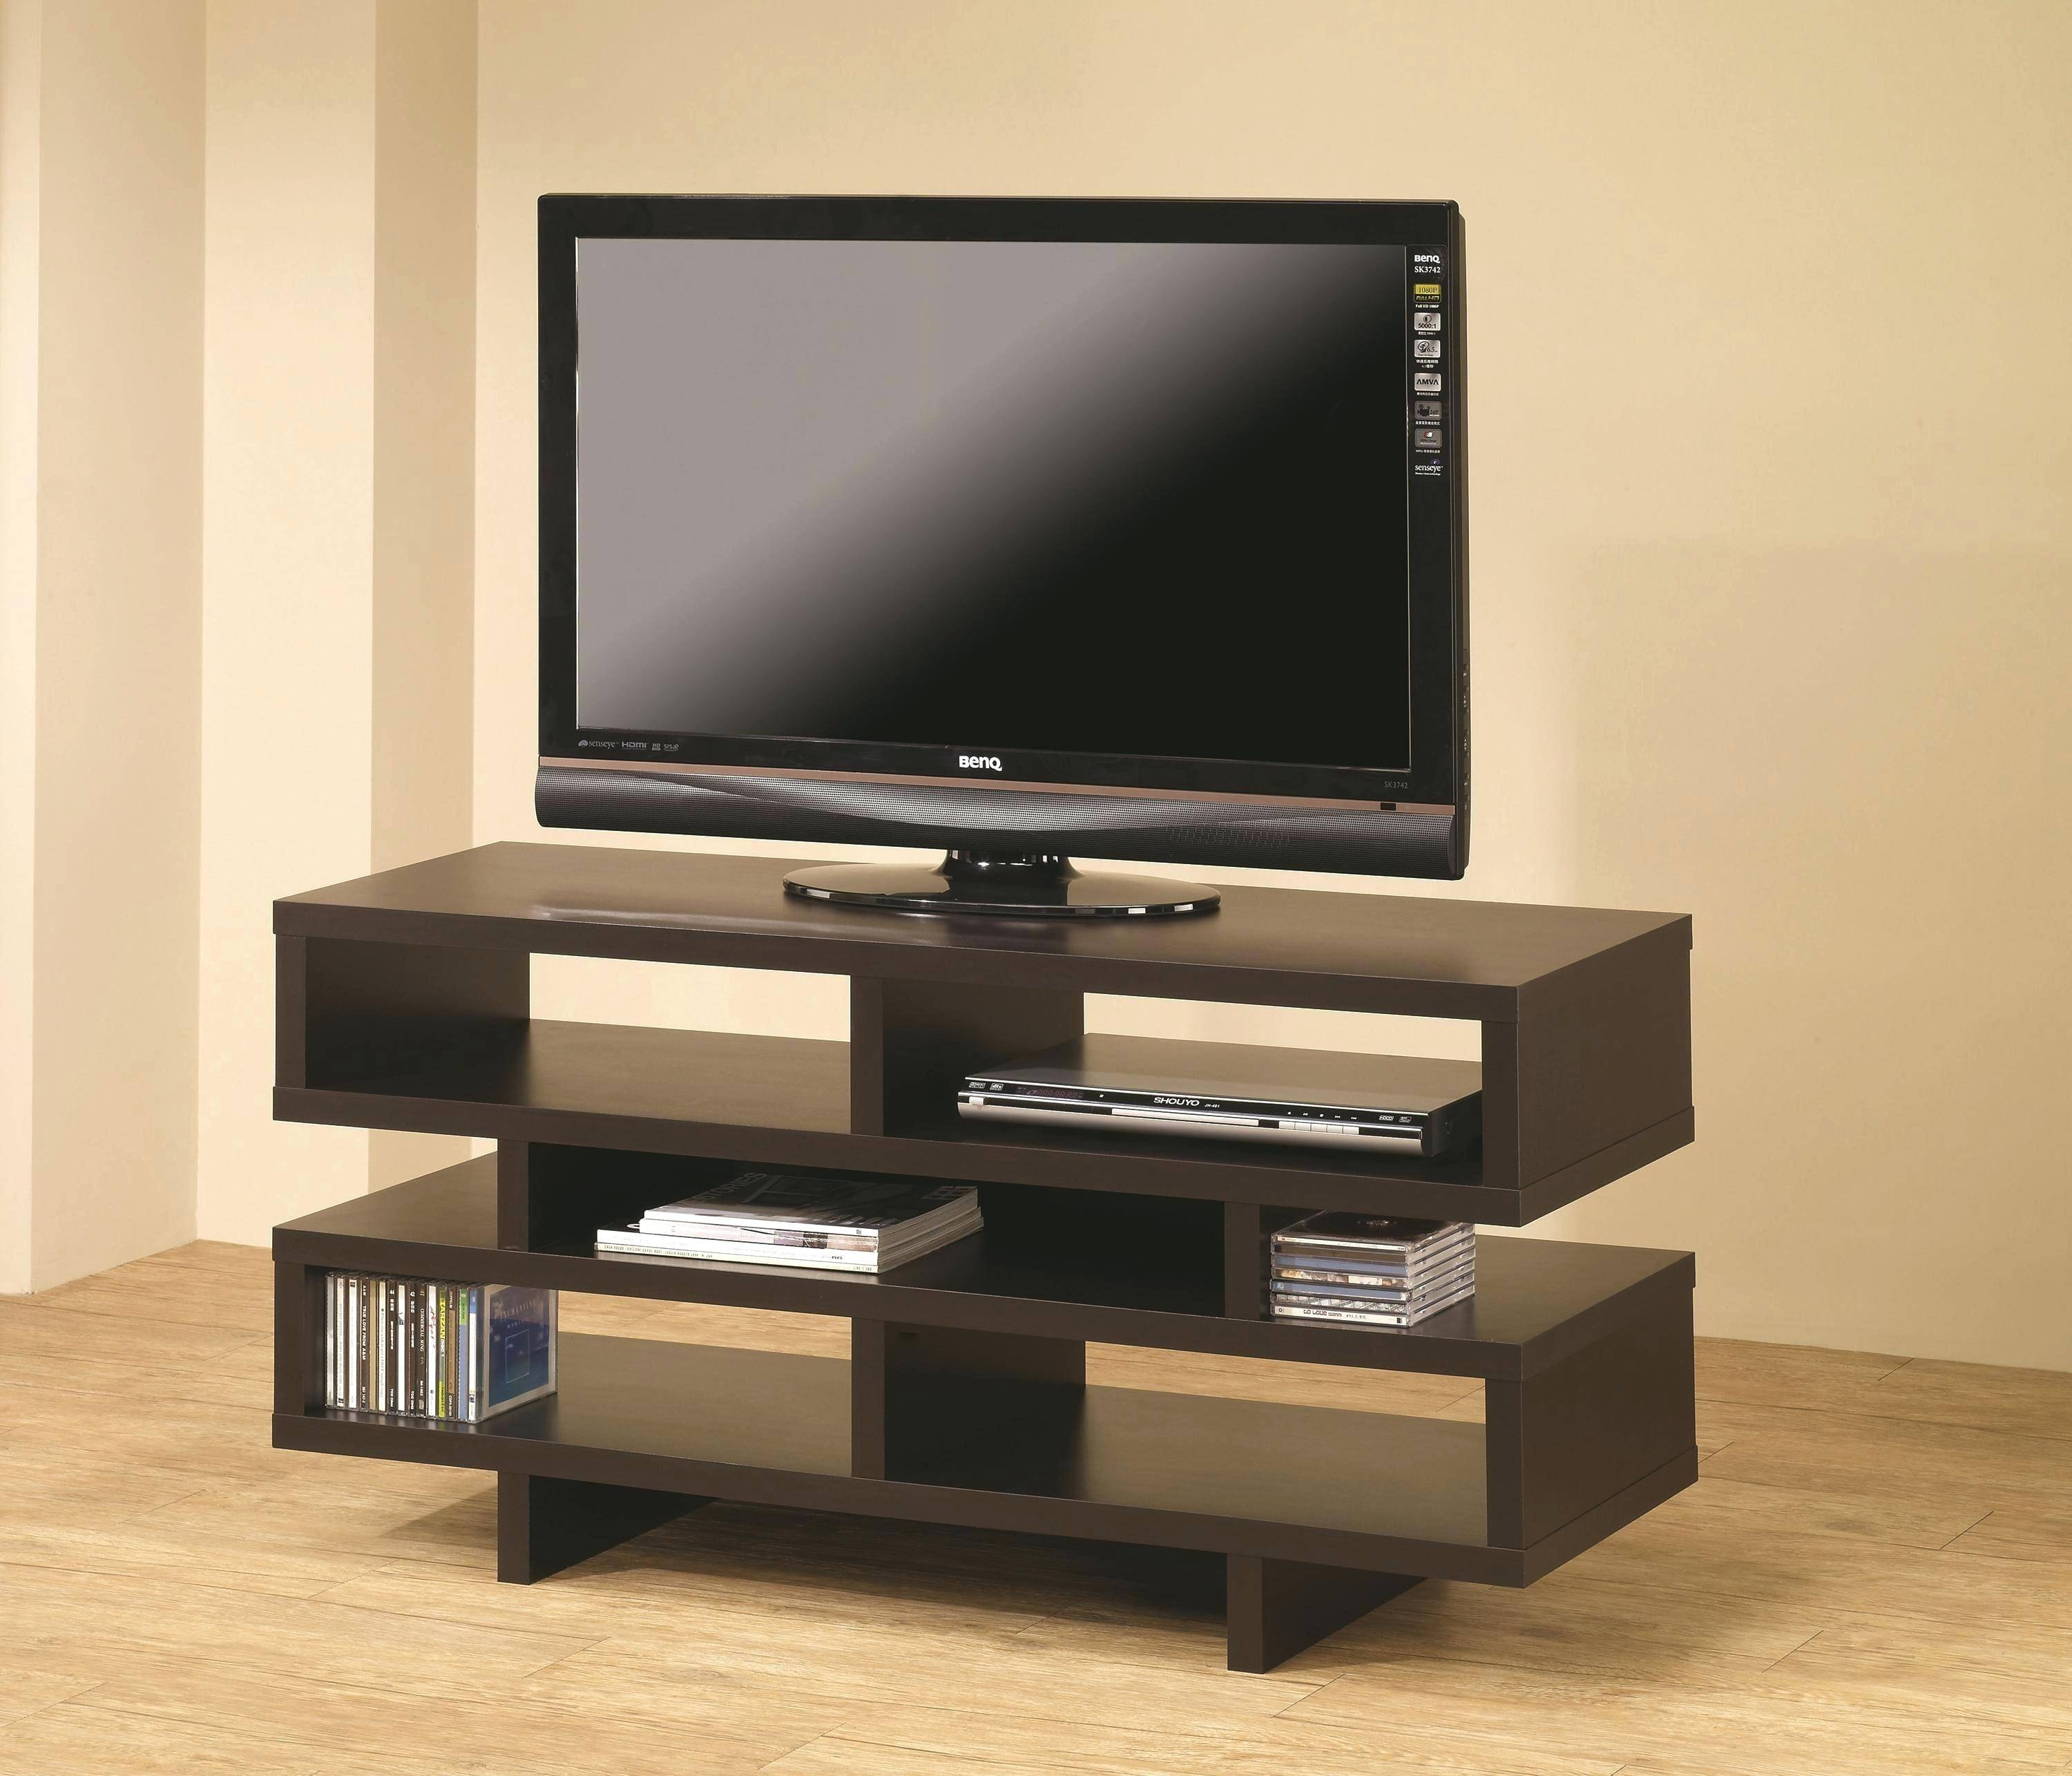 Tv Stand : Bright Full Size Of Tv Stand Design Samsung Tv Stand Within Trendy Tv Stands (View 5 of 15)